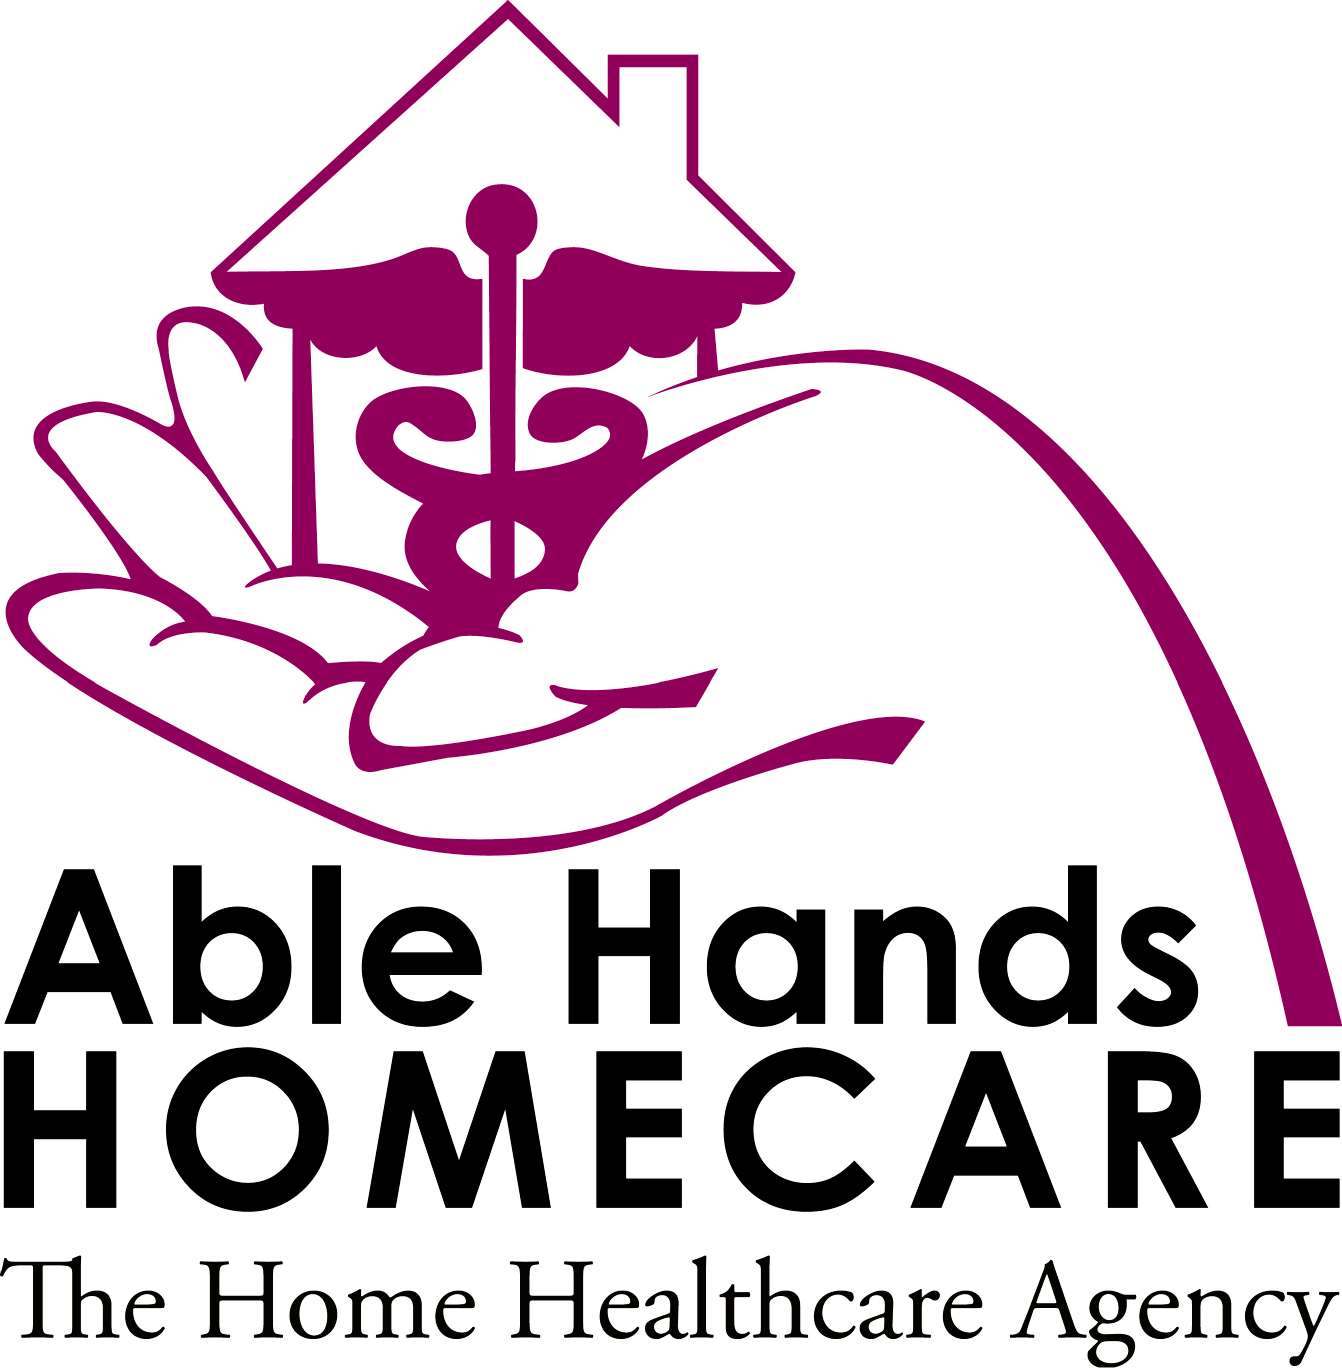 Able Hands Homecare